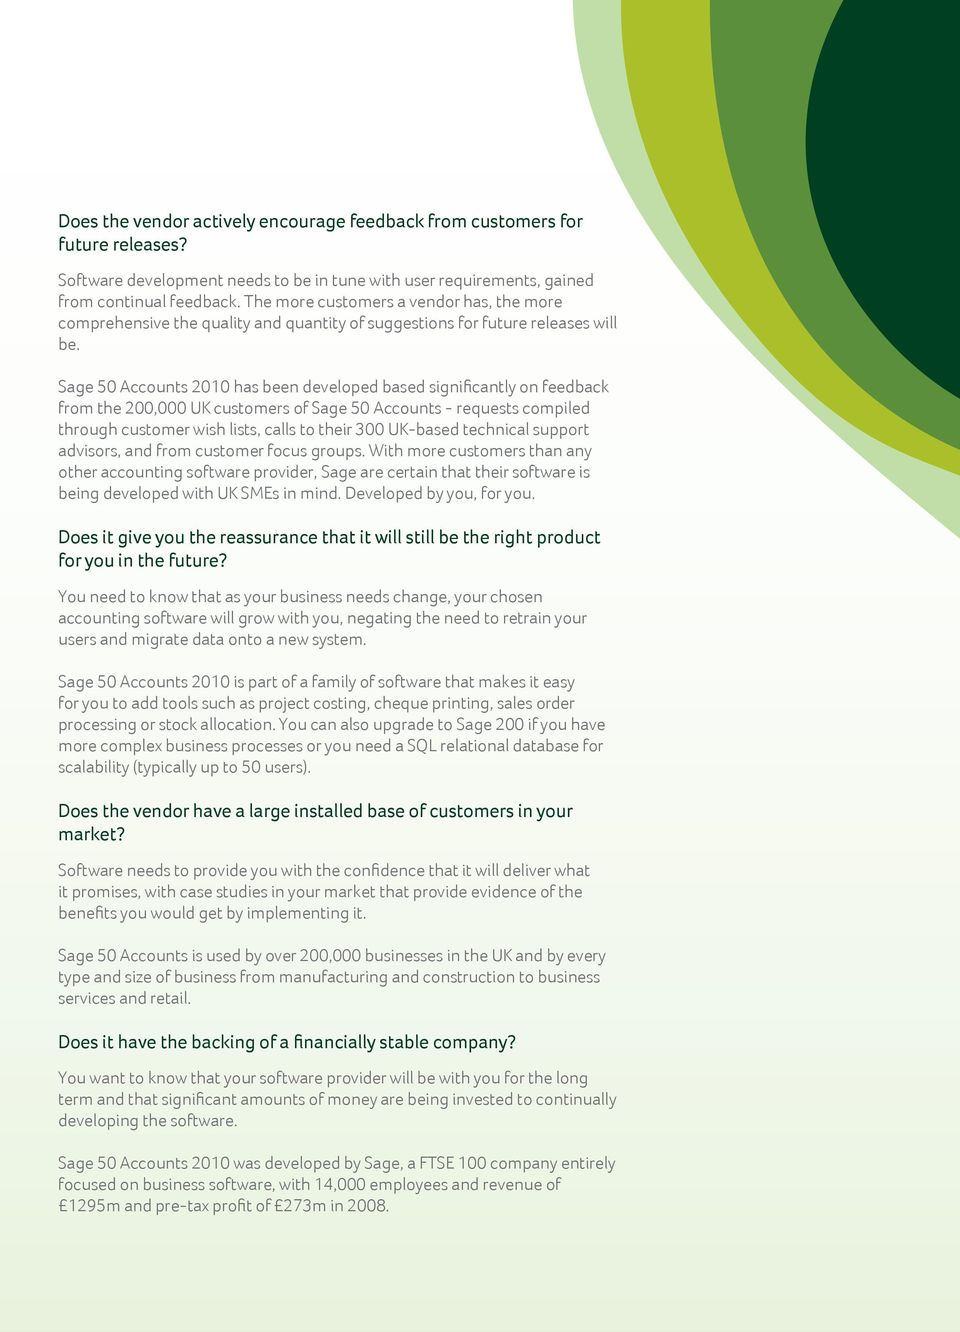 Sage 50 Accounts 2010 has been developed based significantly on feedback from the 200,000 UK customers of Sage 50 Accounts - requests compiled through customer wish lists, calls to their 300 UK-based